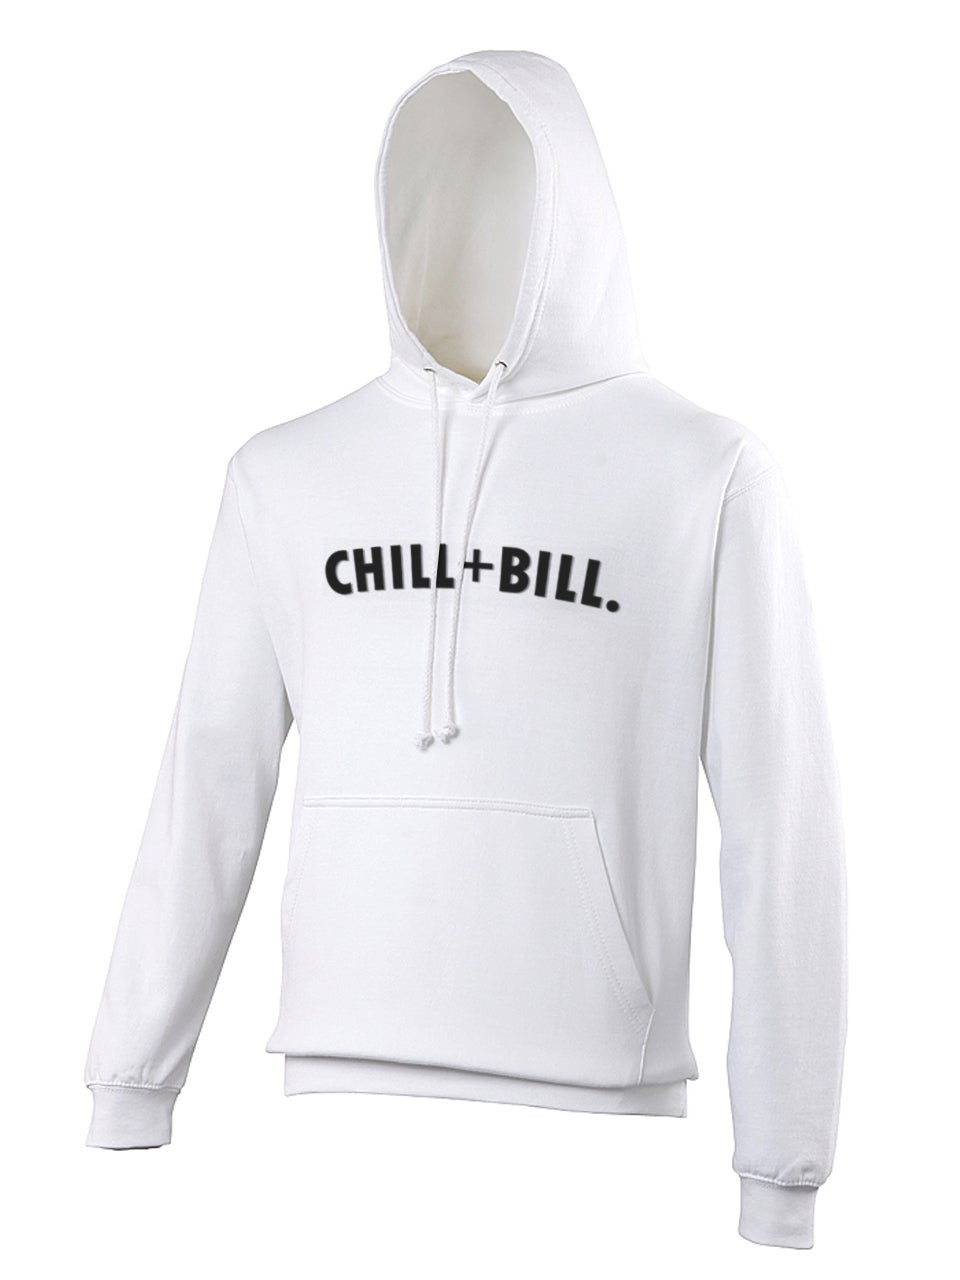 Image of Chill+Bill Hoodie in White